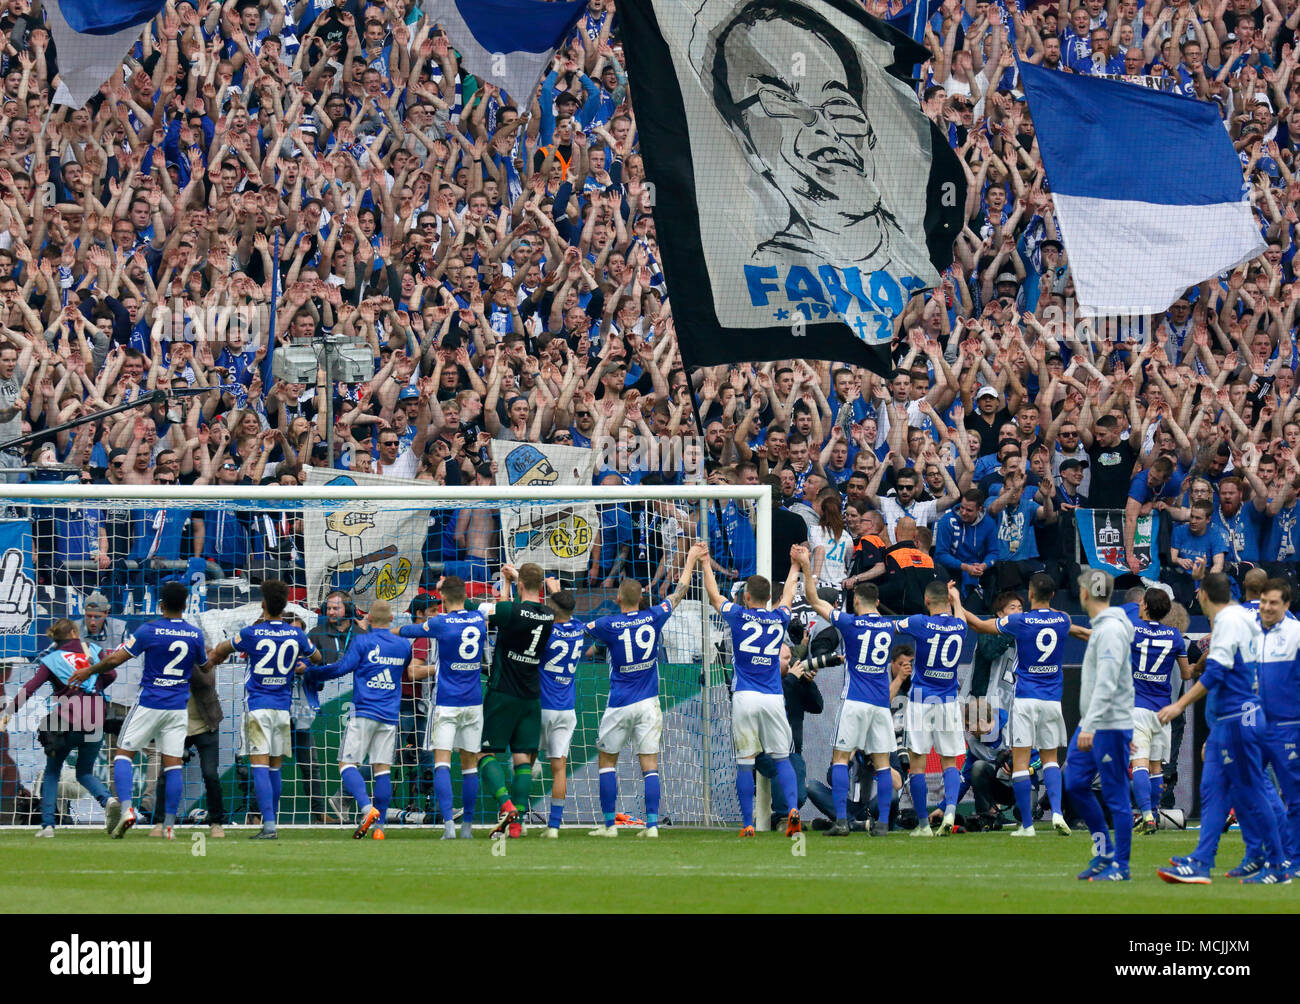 schalke 04 fans stockfotos schalke 04 fans bilder alamy. Black Bedroom Furniture Sets. Home Design Ideas